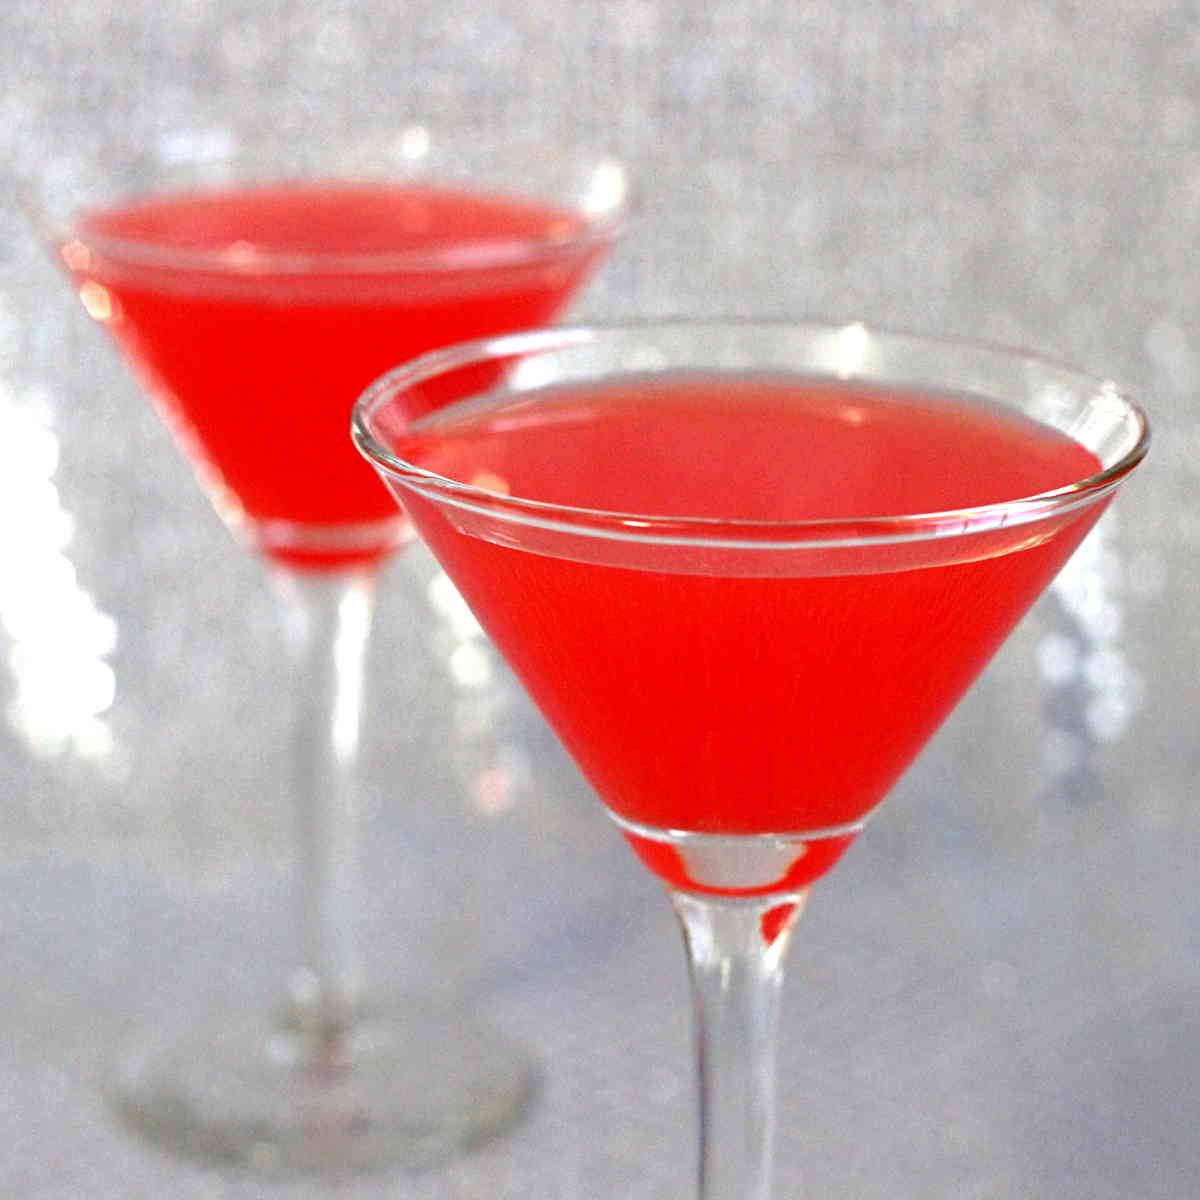 Pomegranate Martini cocktail recipe